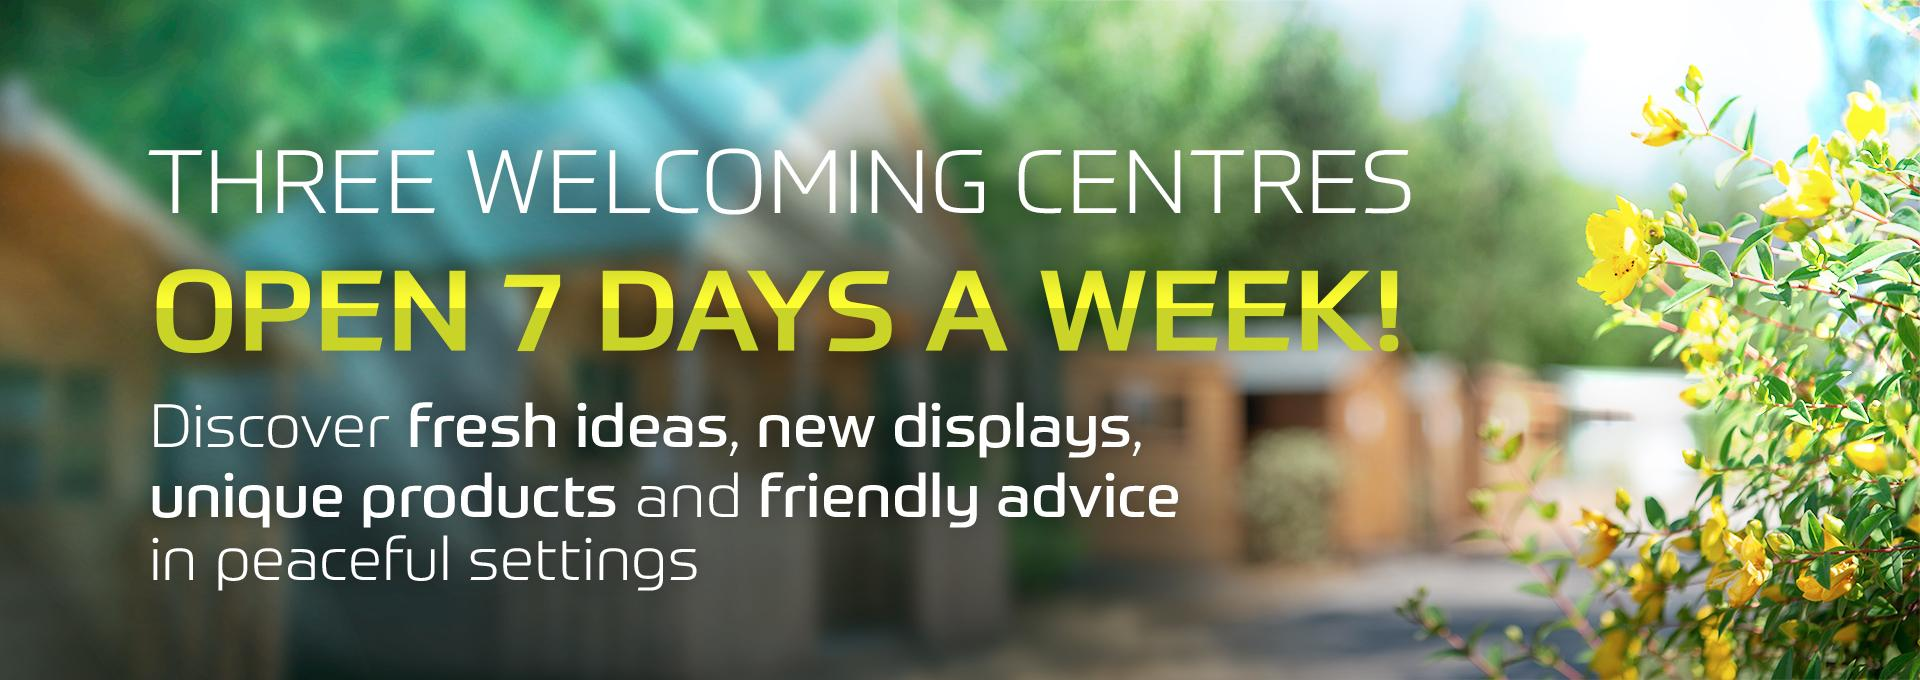 We are open 7 days a week at earnshaws fencing centres